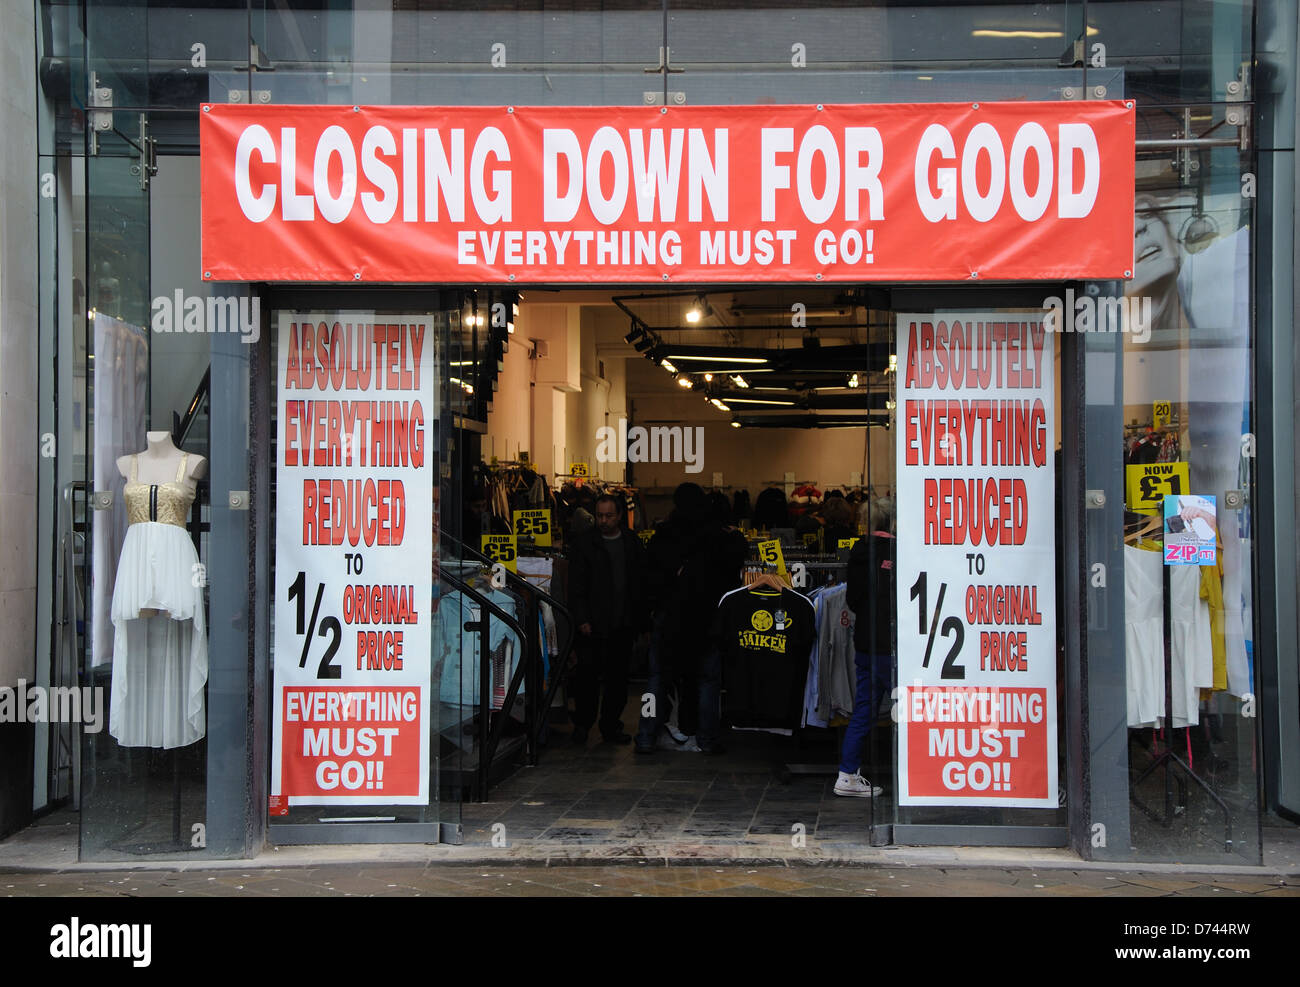 Closing down for good sale, clothes shop, Leicester, England, UK - Stock Image